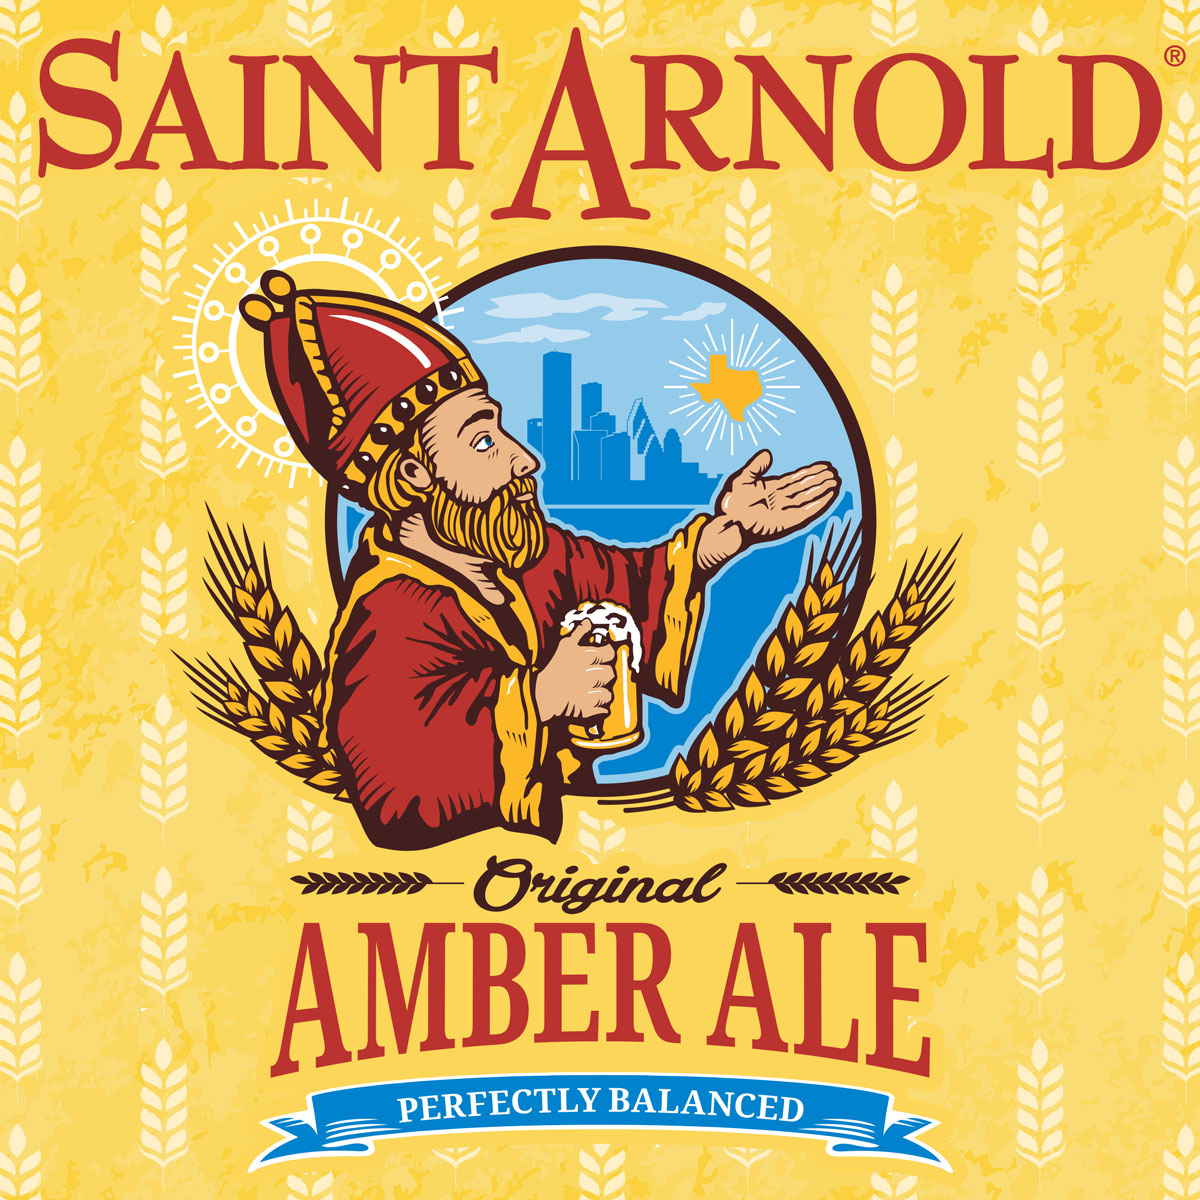 brand_image_amber_ale